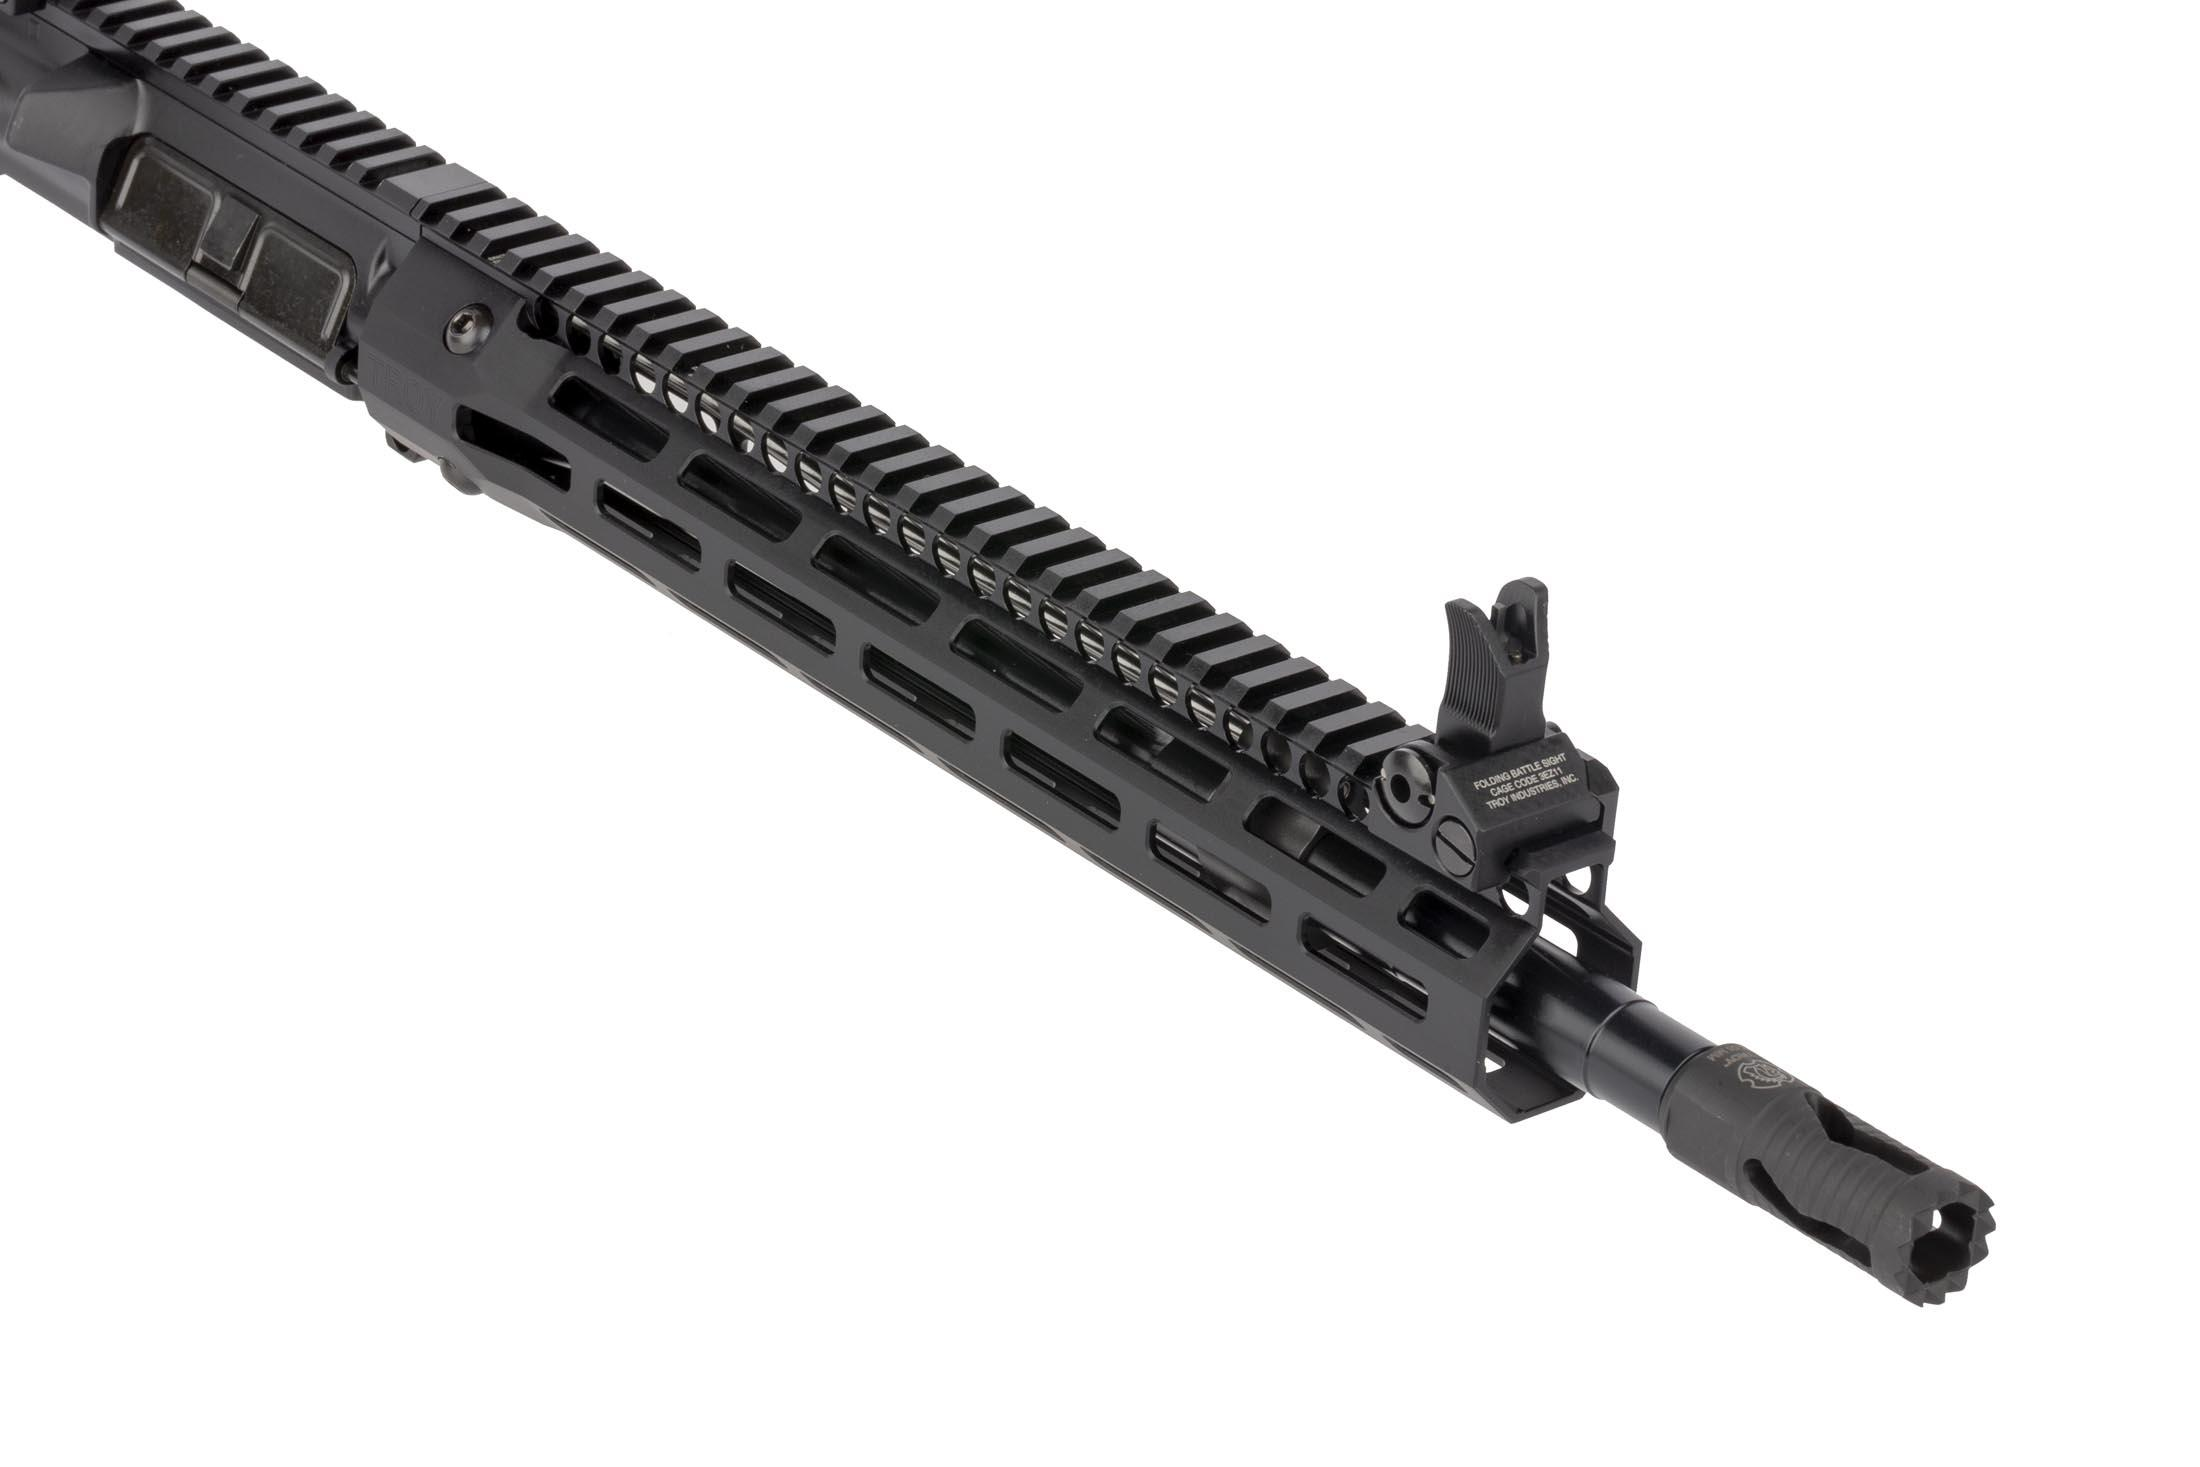 Troy Industries 14.5in complete SOCC upper receiver for the AR15 features a pinned and welded Troy Medievel muzzle brake